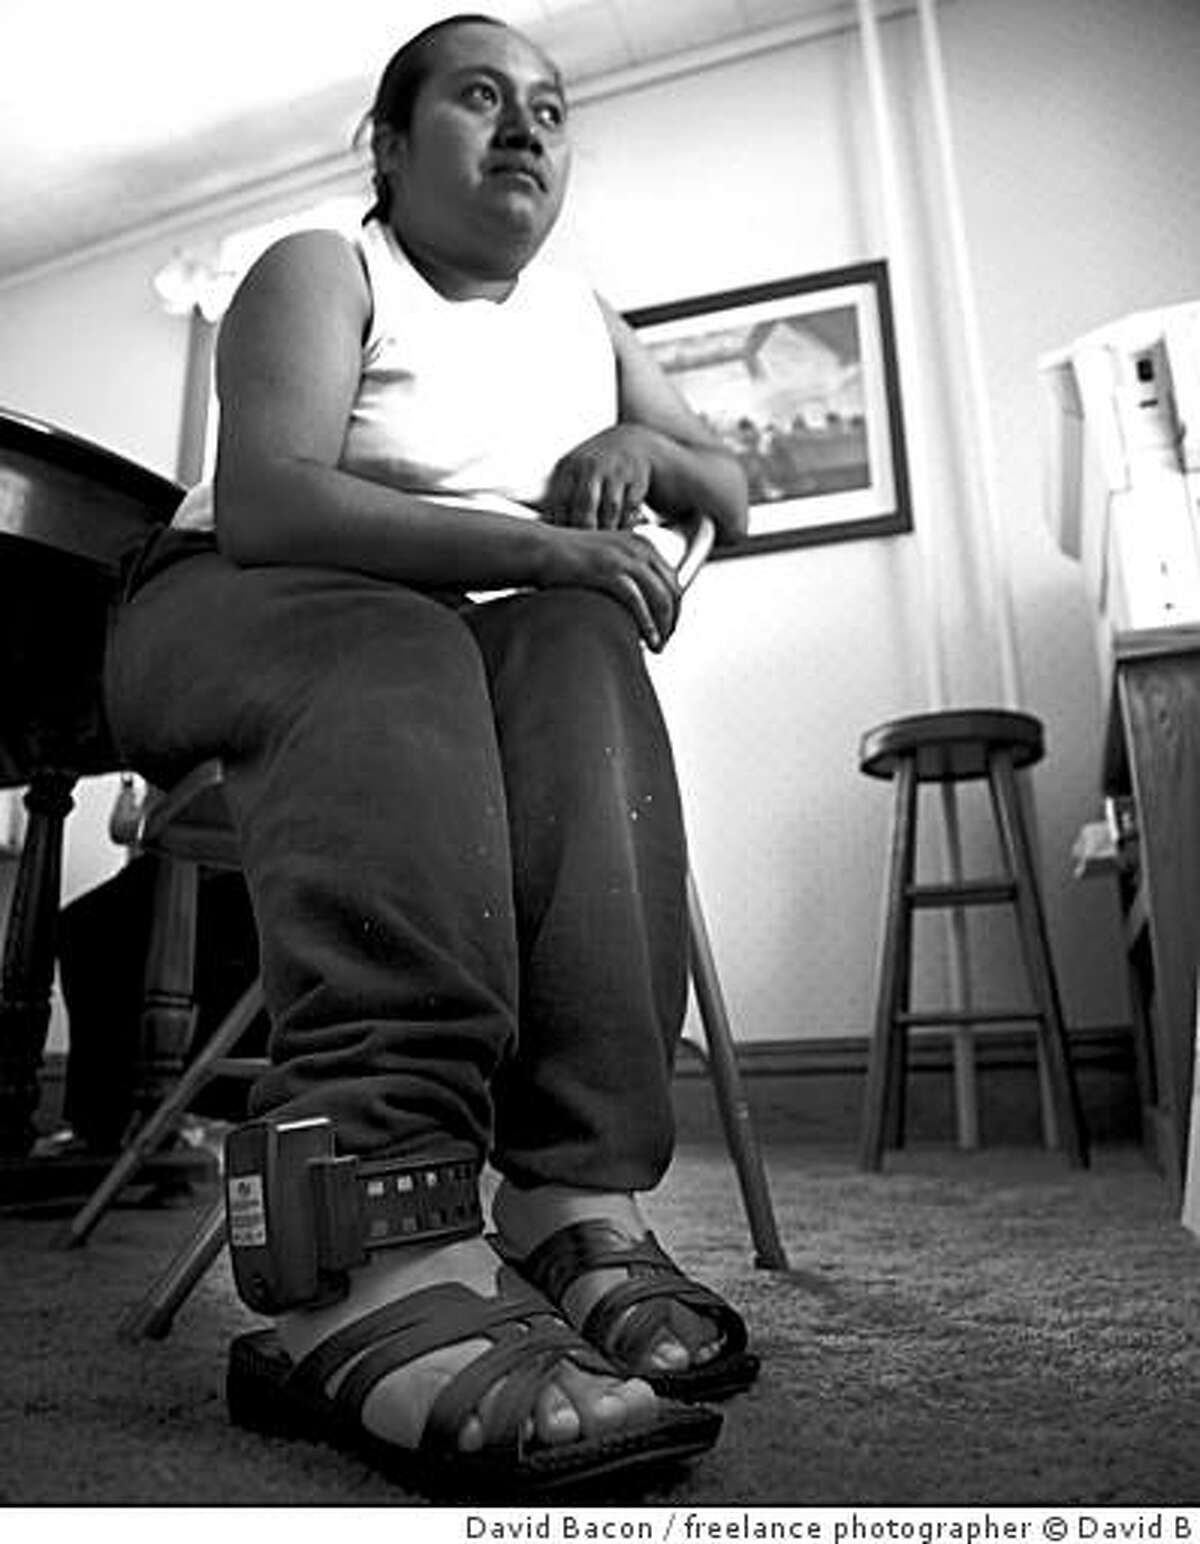 An immigrant caught up in the Postville, Iowa, meat packing raids wears a prison tracking ankle bracelet. Increasingly, illegal immigrants are herded en masse into federal courts, found guilty of entering the country illegally and imprisoned. In the past, immigrants typically were deported. dnbpostville08.jpg POSTVILLE, IOWA - 18JULY08 - Anacleta Tajtaj, a Guatemalan immigrant, was arrested in an immigration raid at the Agriprocessors meatpacking plant in Postville. The raid was the largest workplace raid in a single worksite in recent history. Tajtaj was released to care for her son Edgar, but now has to wear an ankle bracelet to monitor her movements. She cannot work or travel, and has been waiting for weeks for a hearing which would result in her deportation.Copyright David Bacon